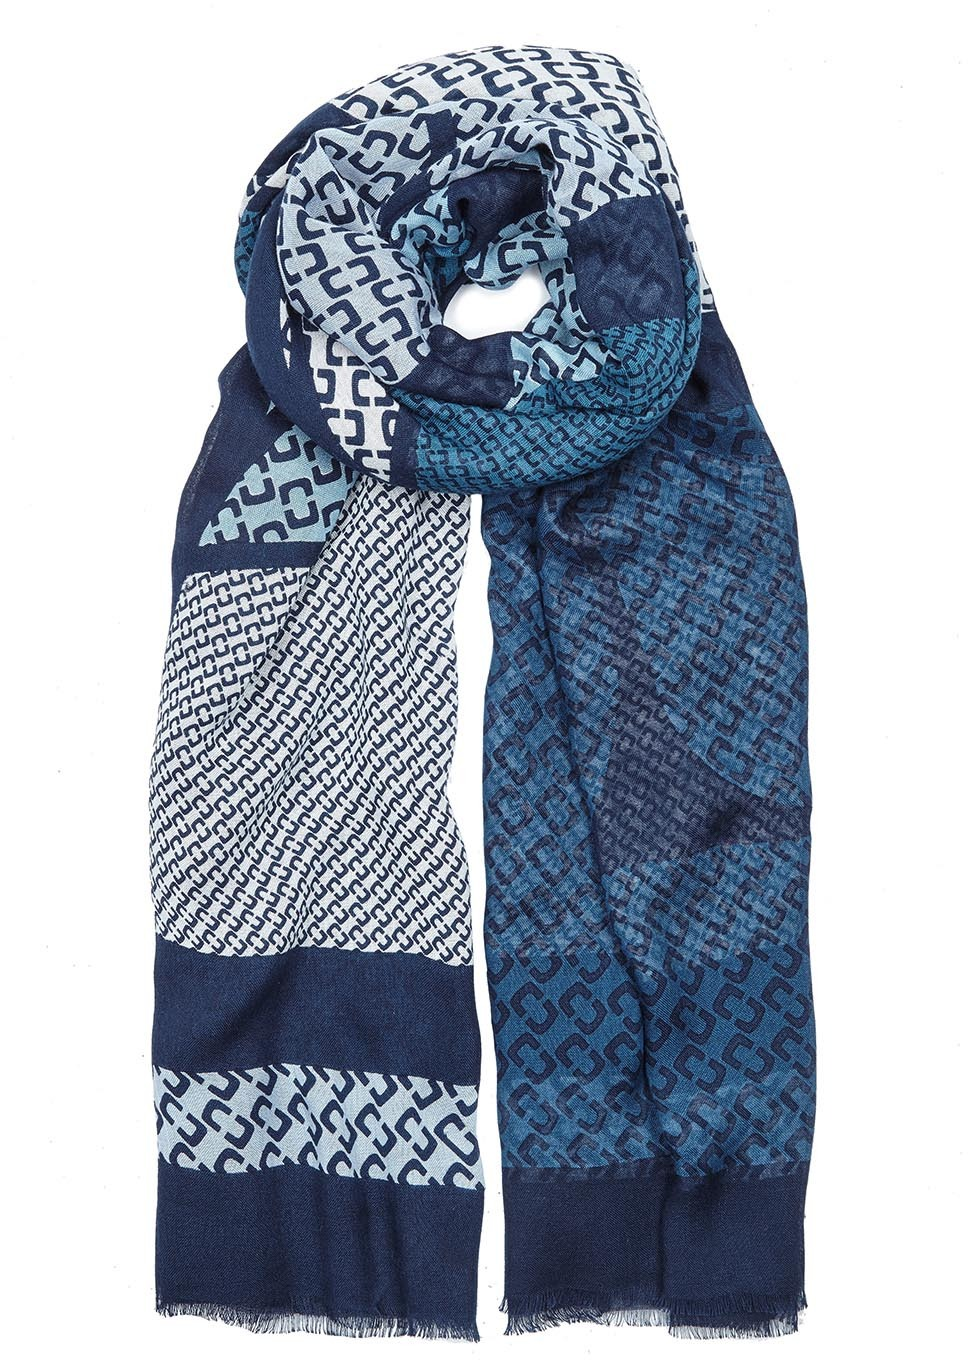 Grace Blue Printed Modal Blend Scarf - secondary colour: navy; predominant colour: turquoise; occasions: casual, creative work; type of pattern: standard; style: regular; size: standard; material: fabric; pattern: patterned/print; season: s/s 2016; wardrobe: highlight